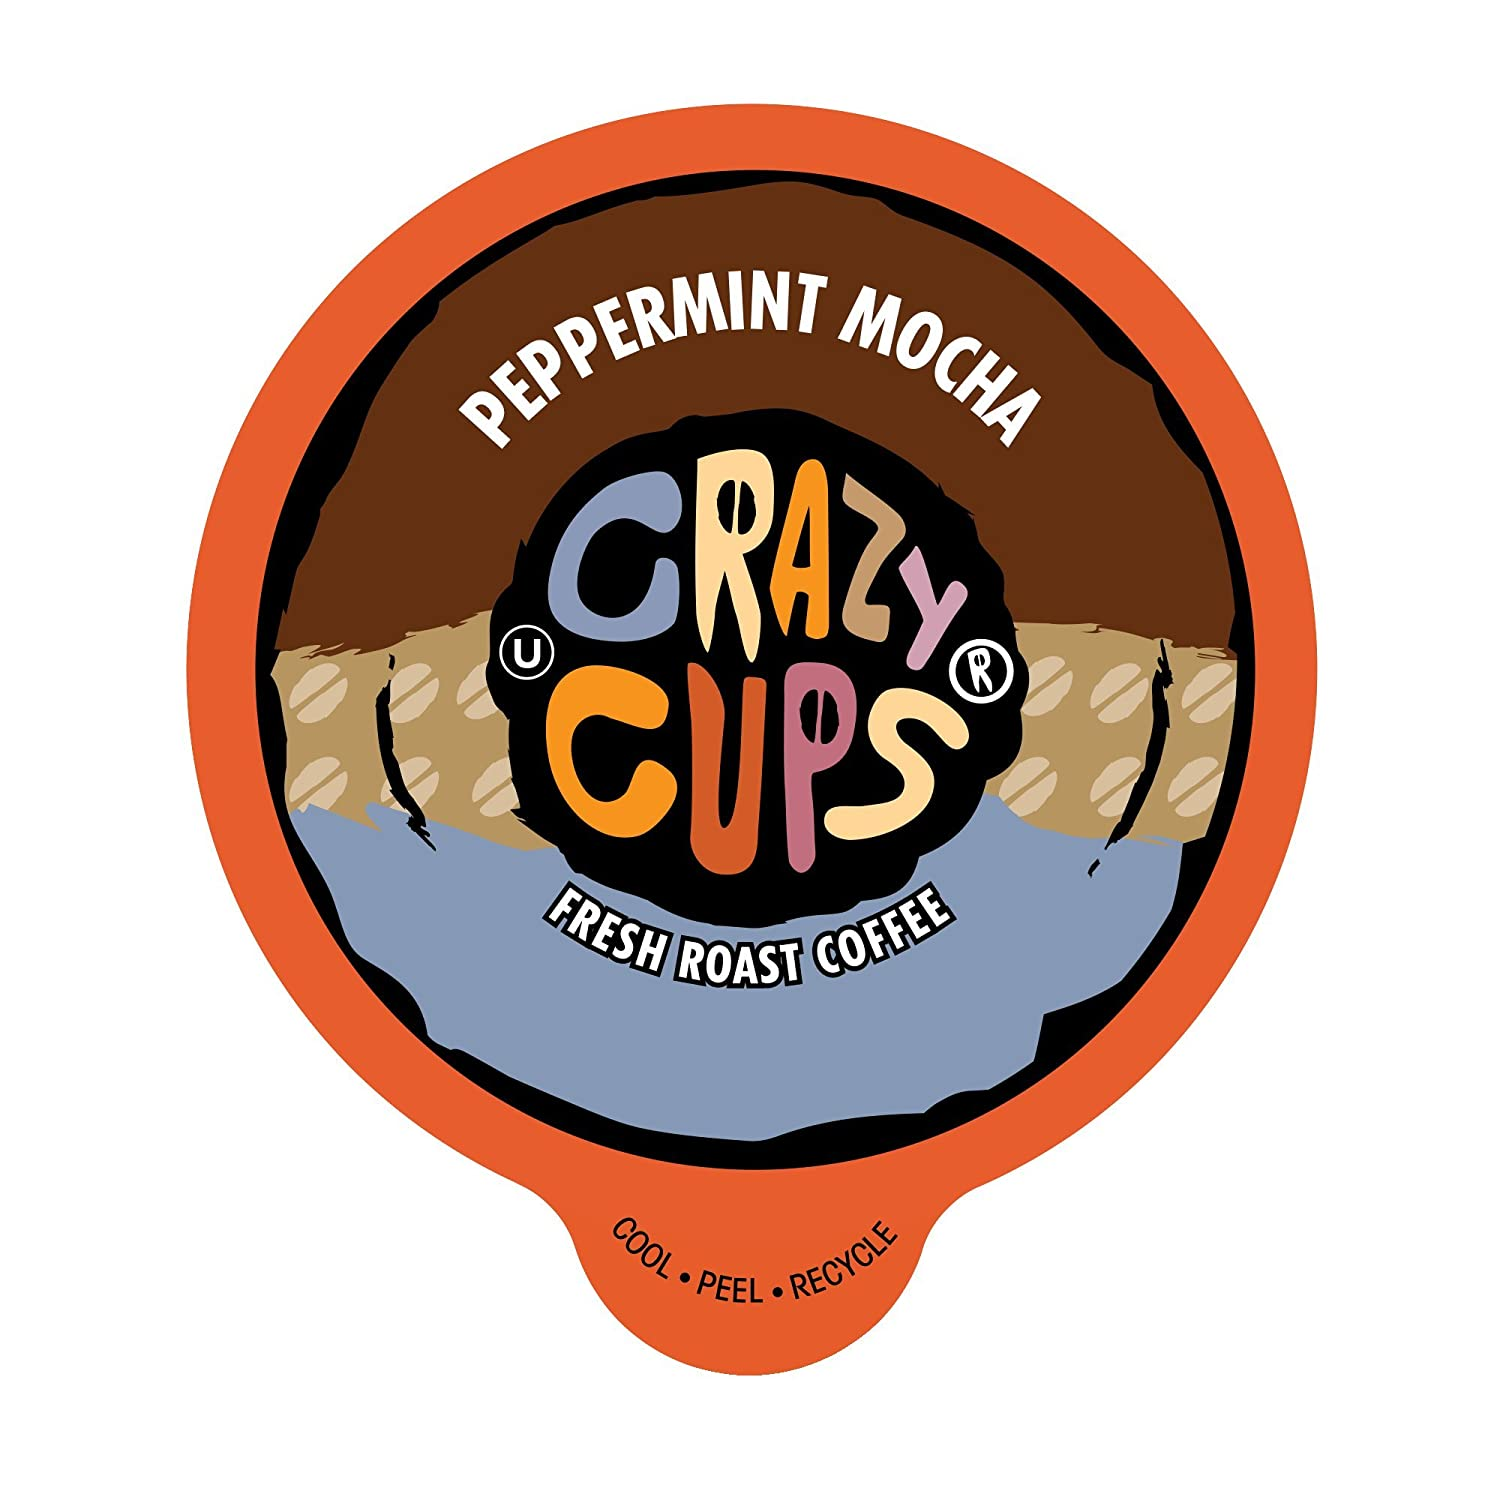 Crazy Cups Flavored Coffee for Keurig K-Cup Machines, Peppermint Chocolate Mocha, Hot or Iced Drinks, 22 Single Serve, Recyclable Pods